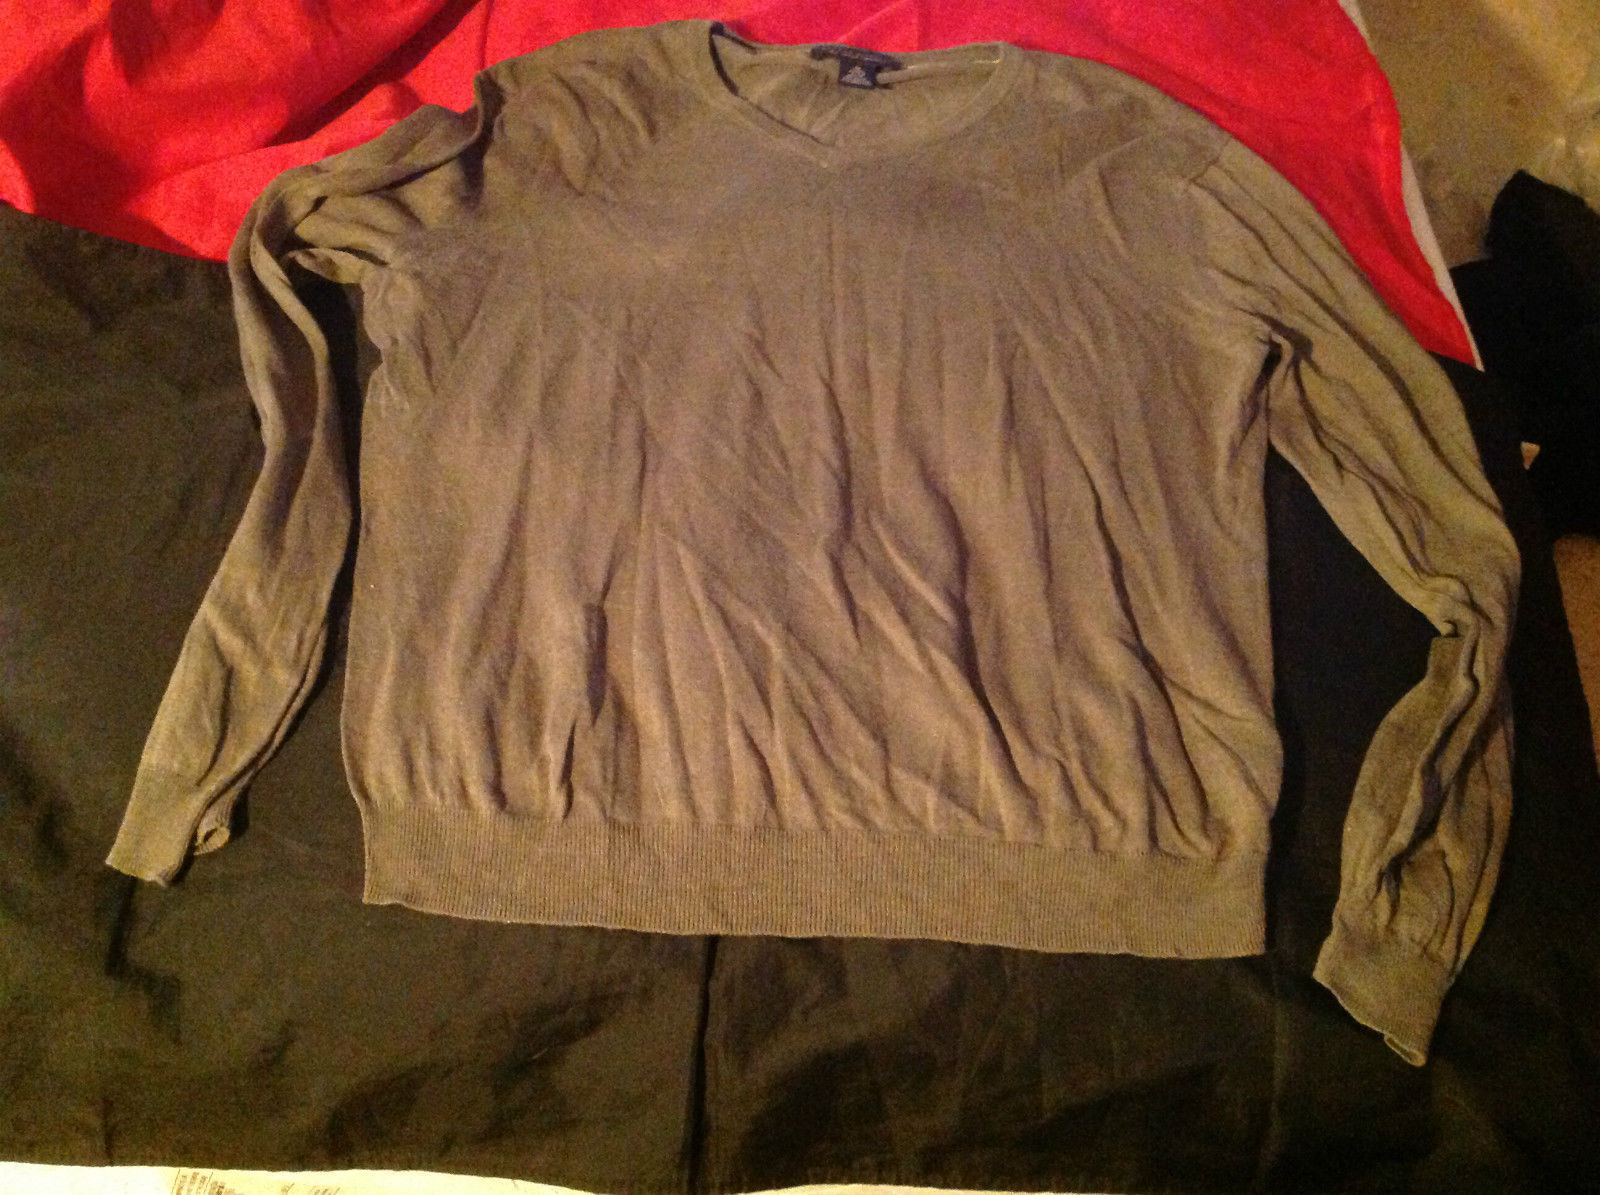 Banana Republic Long Sleeve V-Neck Sweater Olive/Light Green Size Medium